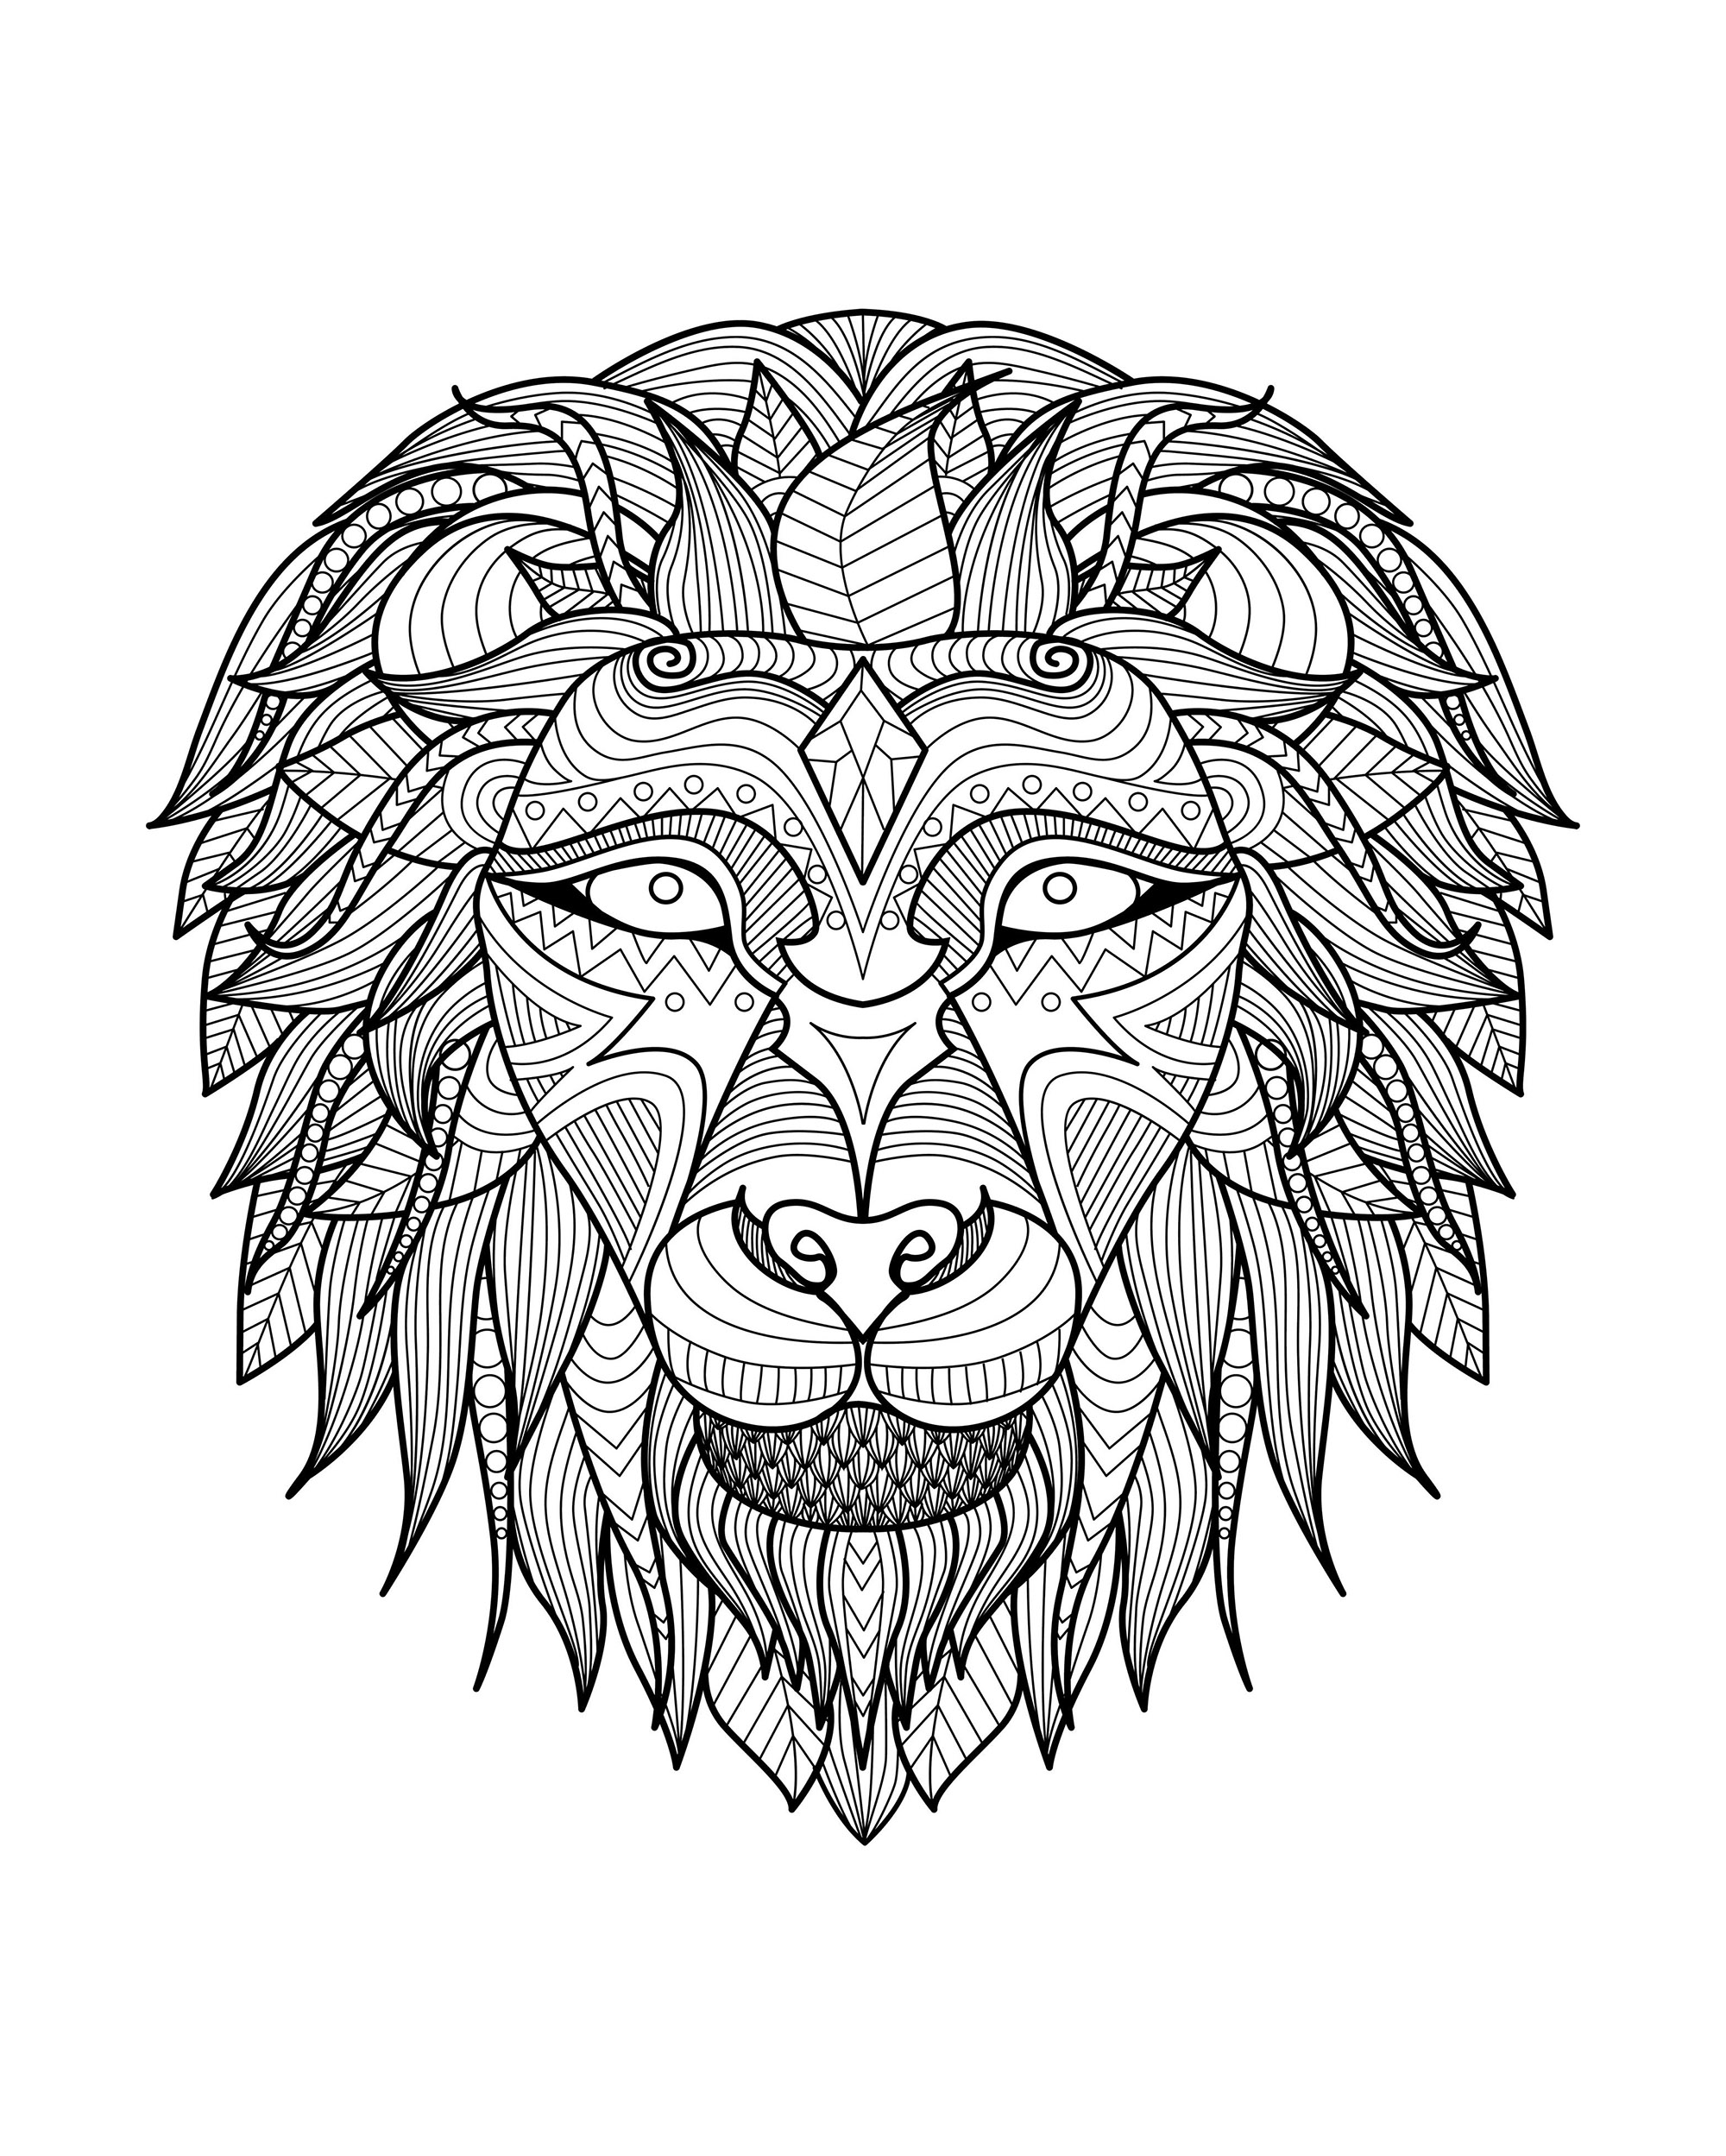 lion coloring sheets lion free to color for children lion kids coloring pages sheets lion coloring